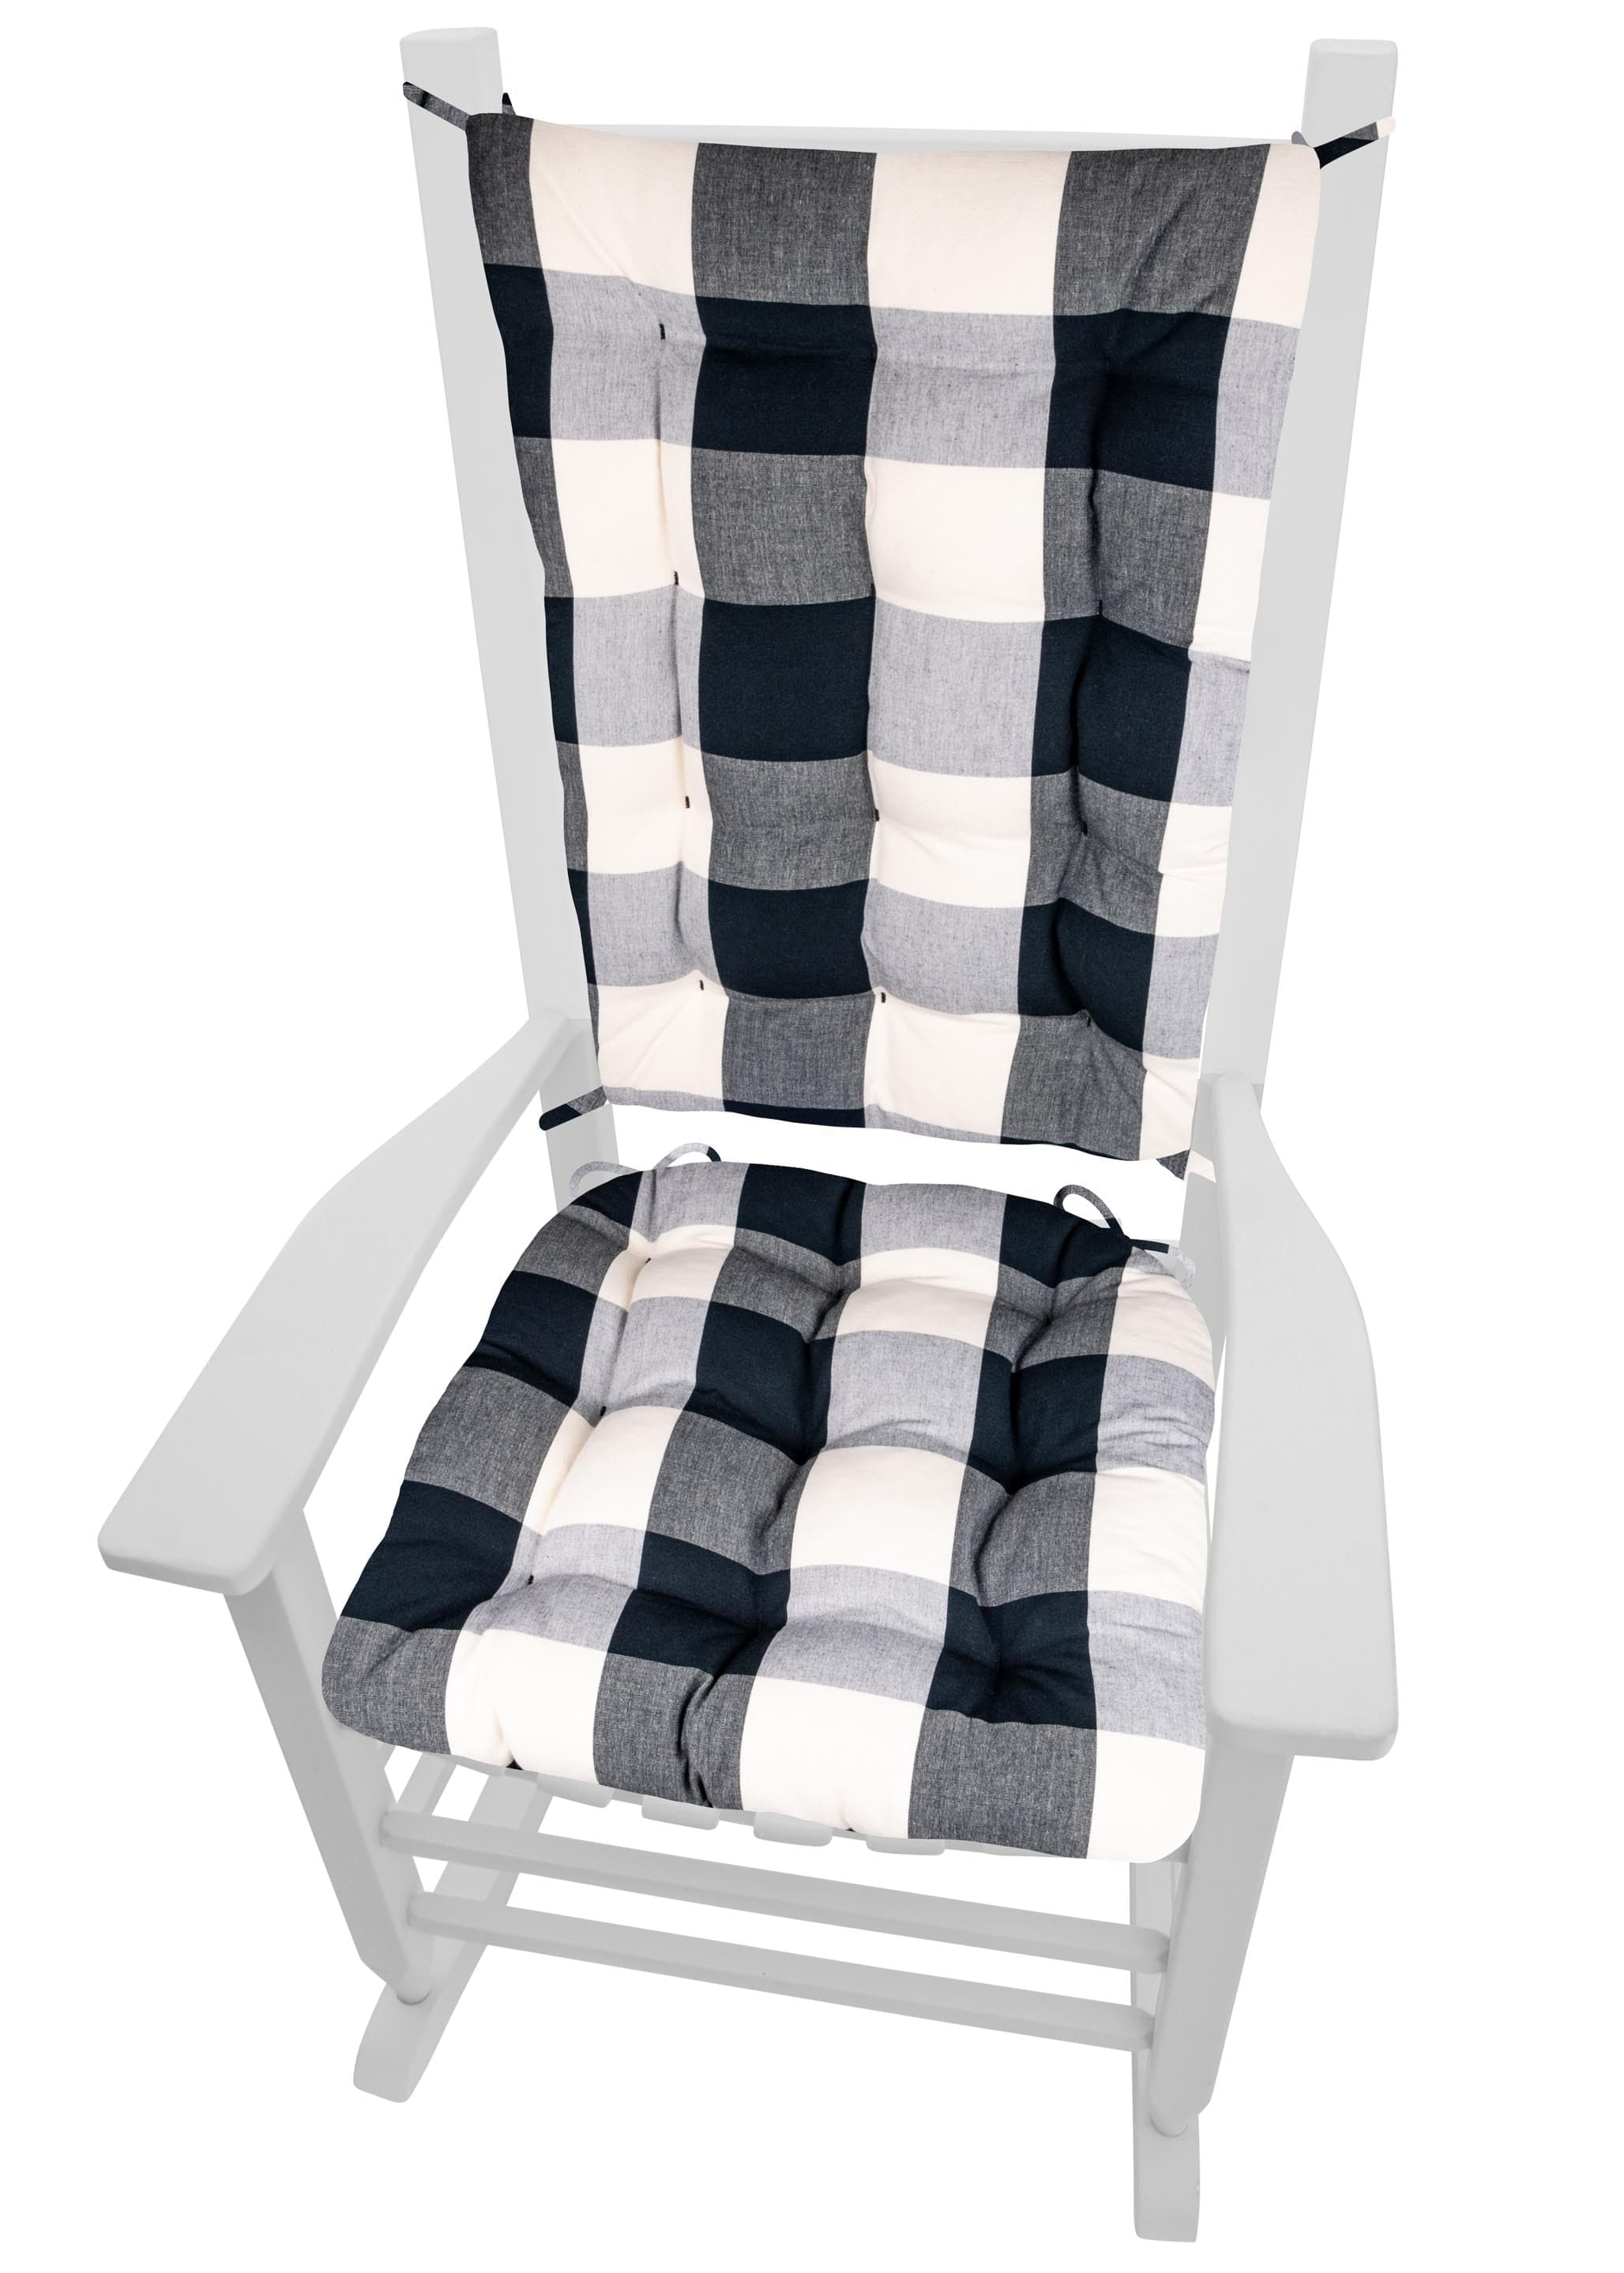 Vignette Buffalo Check Black Rocking Chair Cushions - Barnett Home Decor - Black & White